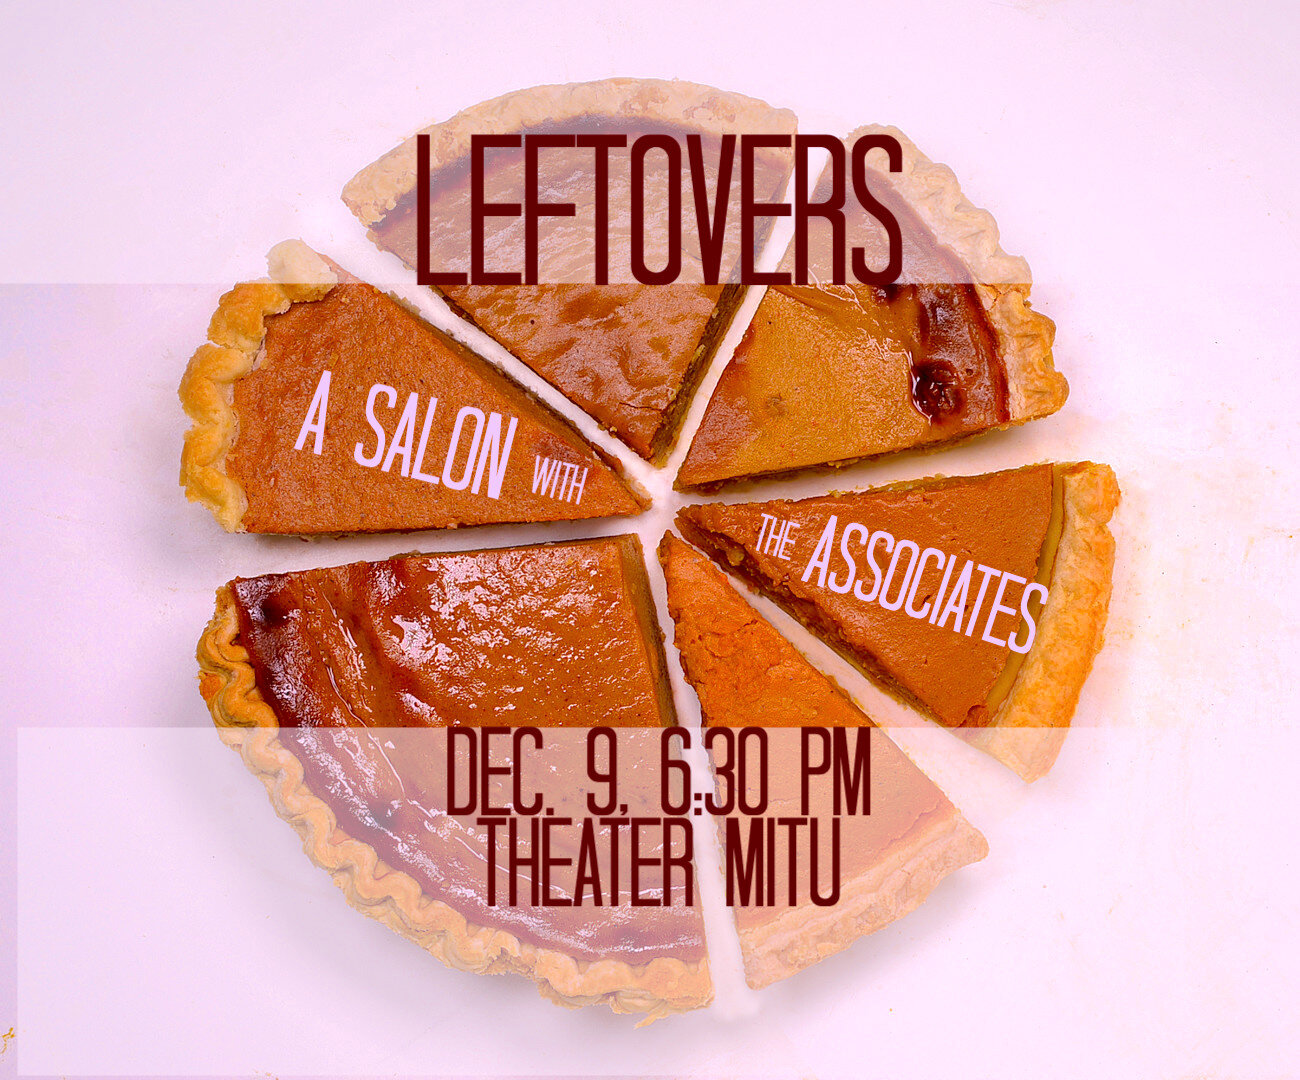 Leftovers A Salon With The Associates